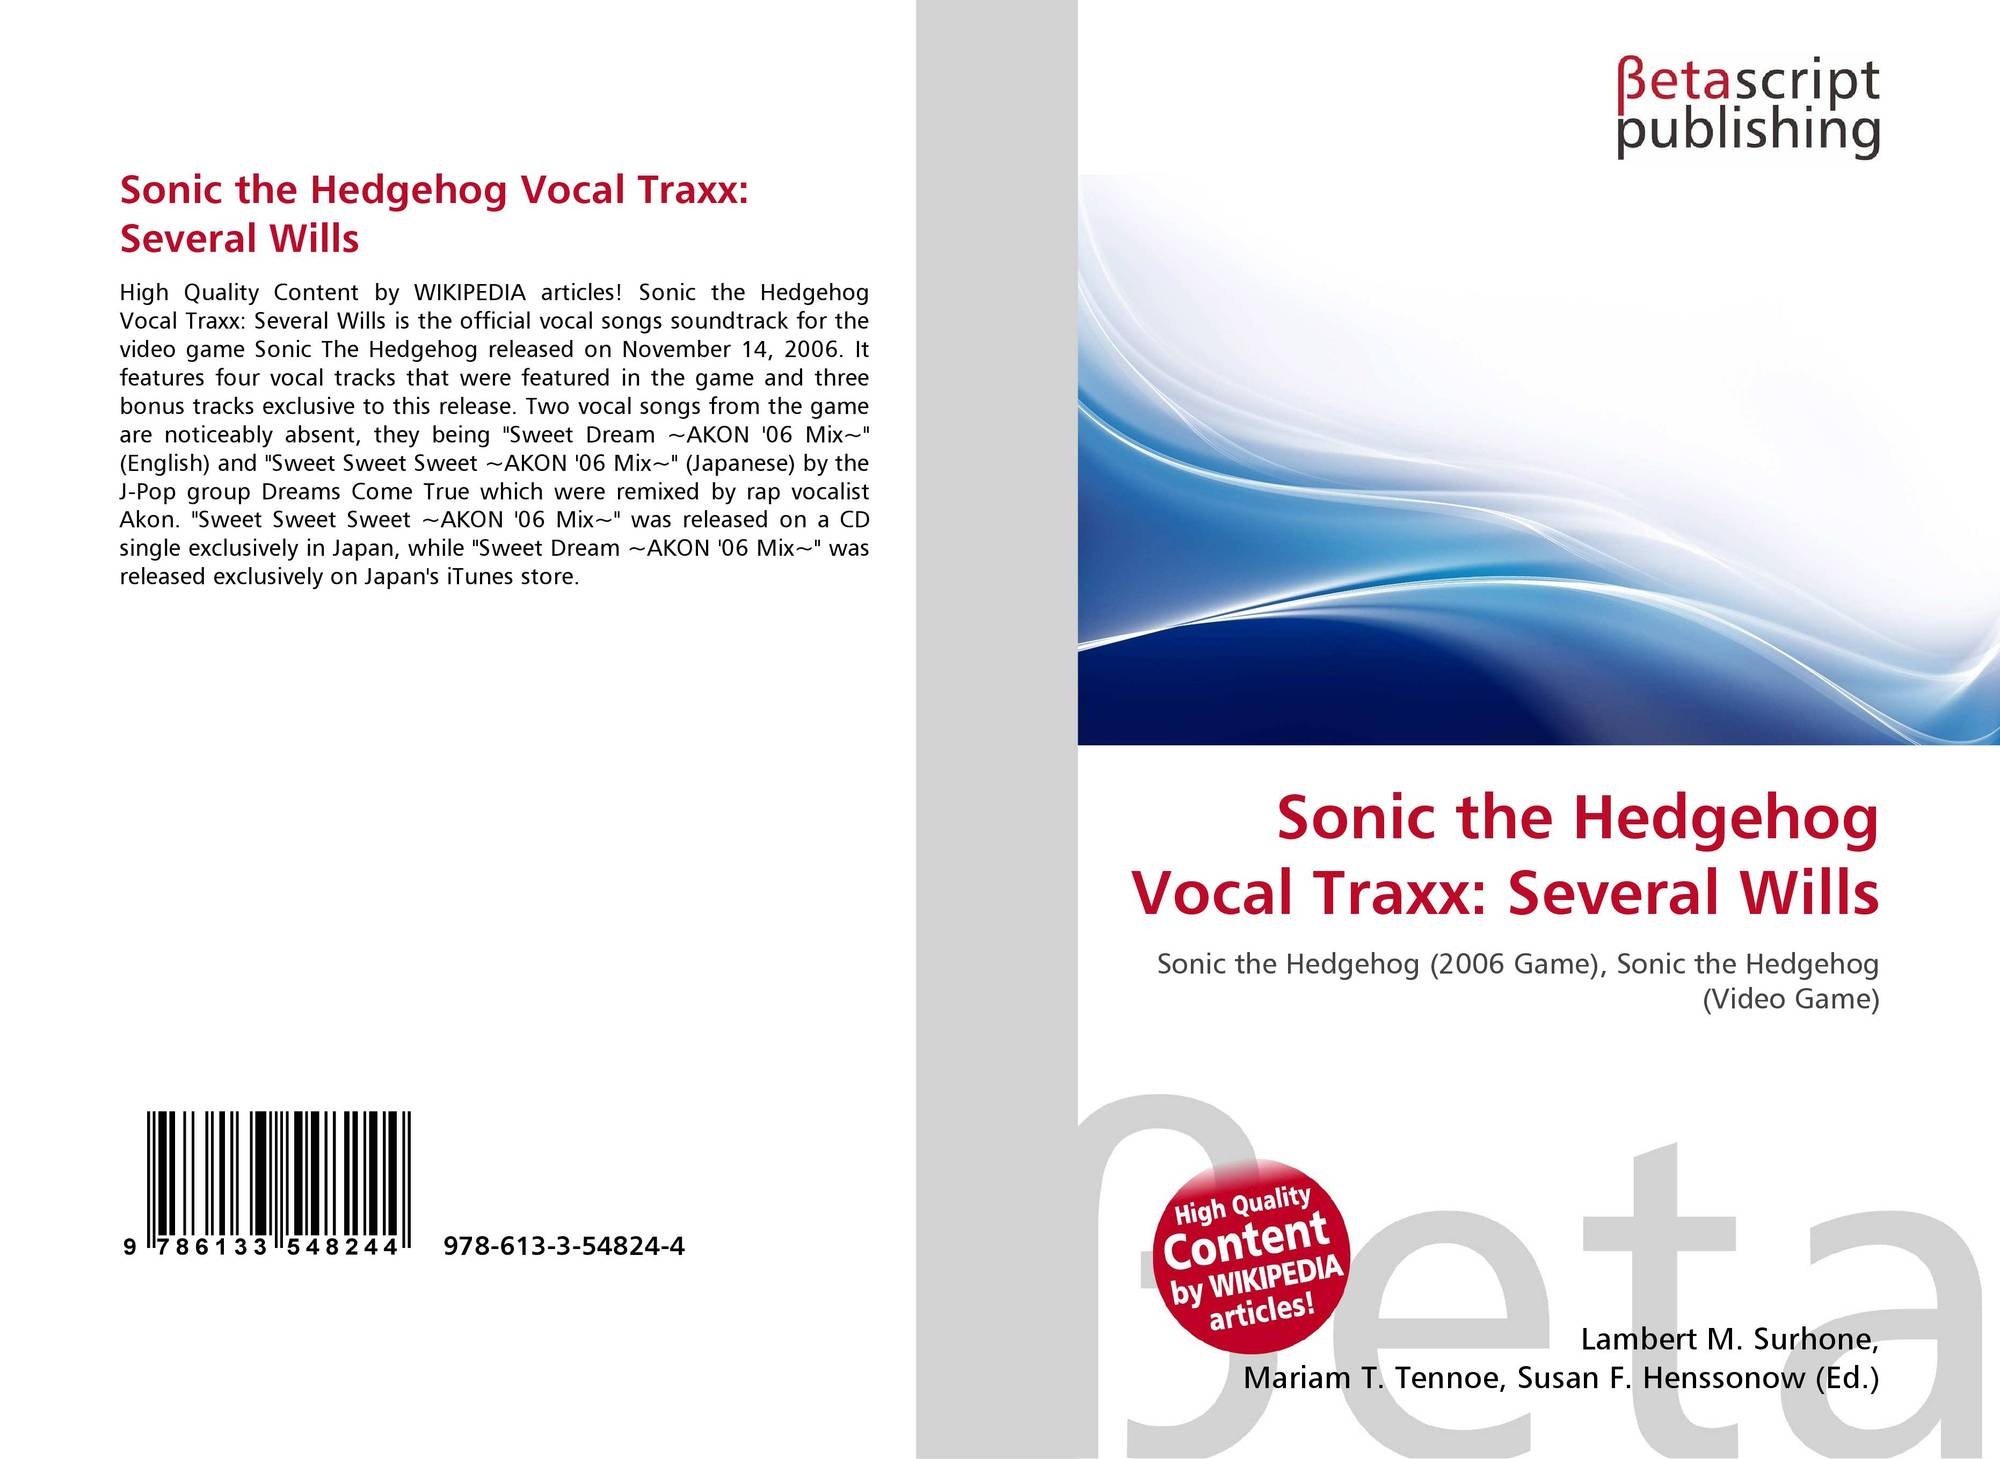 Sonic the Hedgehog Vocal Traxx...